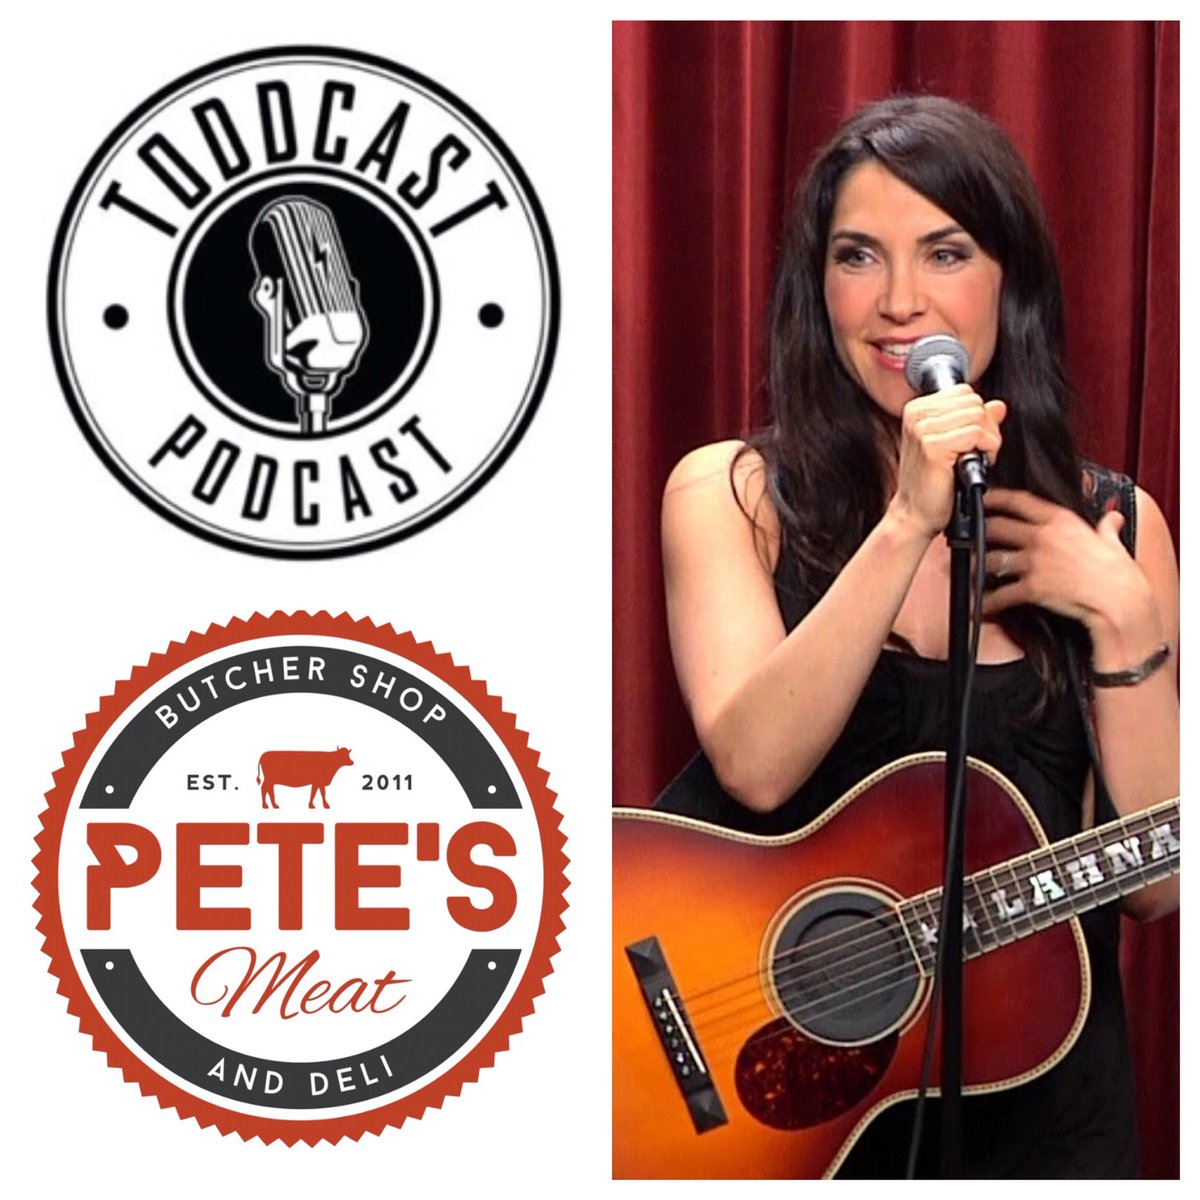 #LosAngeles #Comedian / #Perfect10 podcast host #LahnaTurner was a guest of Ep.106. http://ow.ly/hIaK309wB99  * @Petesmeats powers entertainment guest visits!pic.twitter.com/dL53fgLe0H